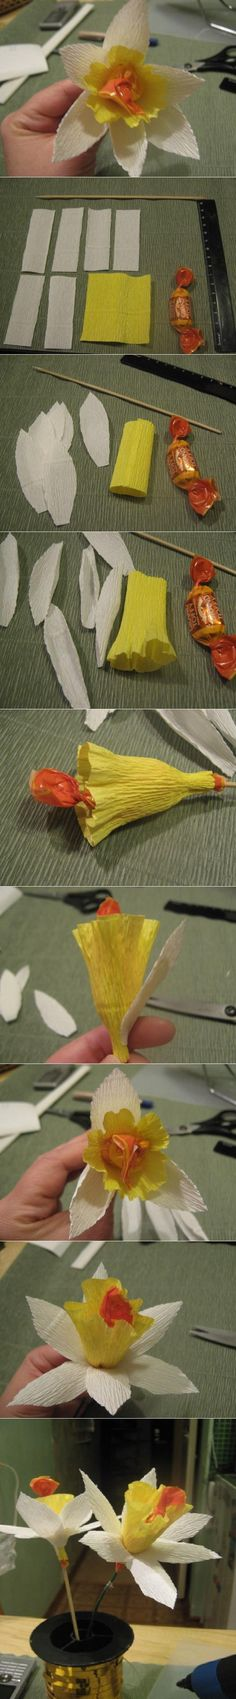 A great favor for the paper bride! DIY Narcissus Flower Chocolate DIY Narcissus Flower Chocolate